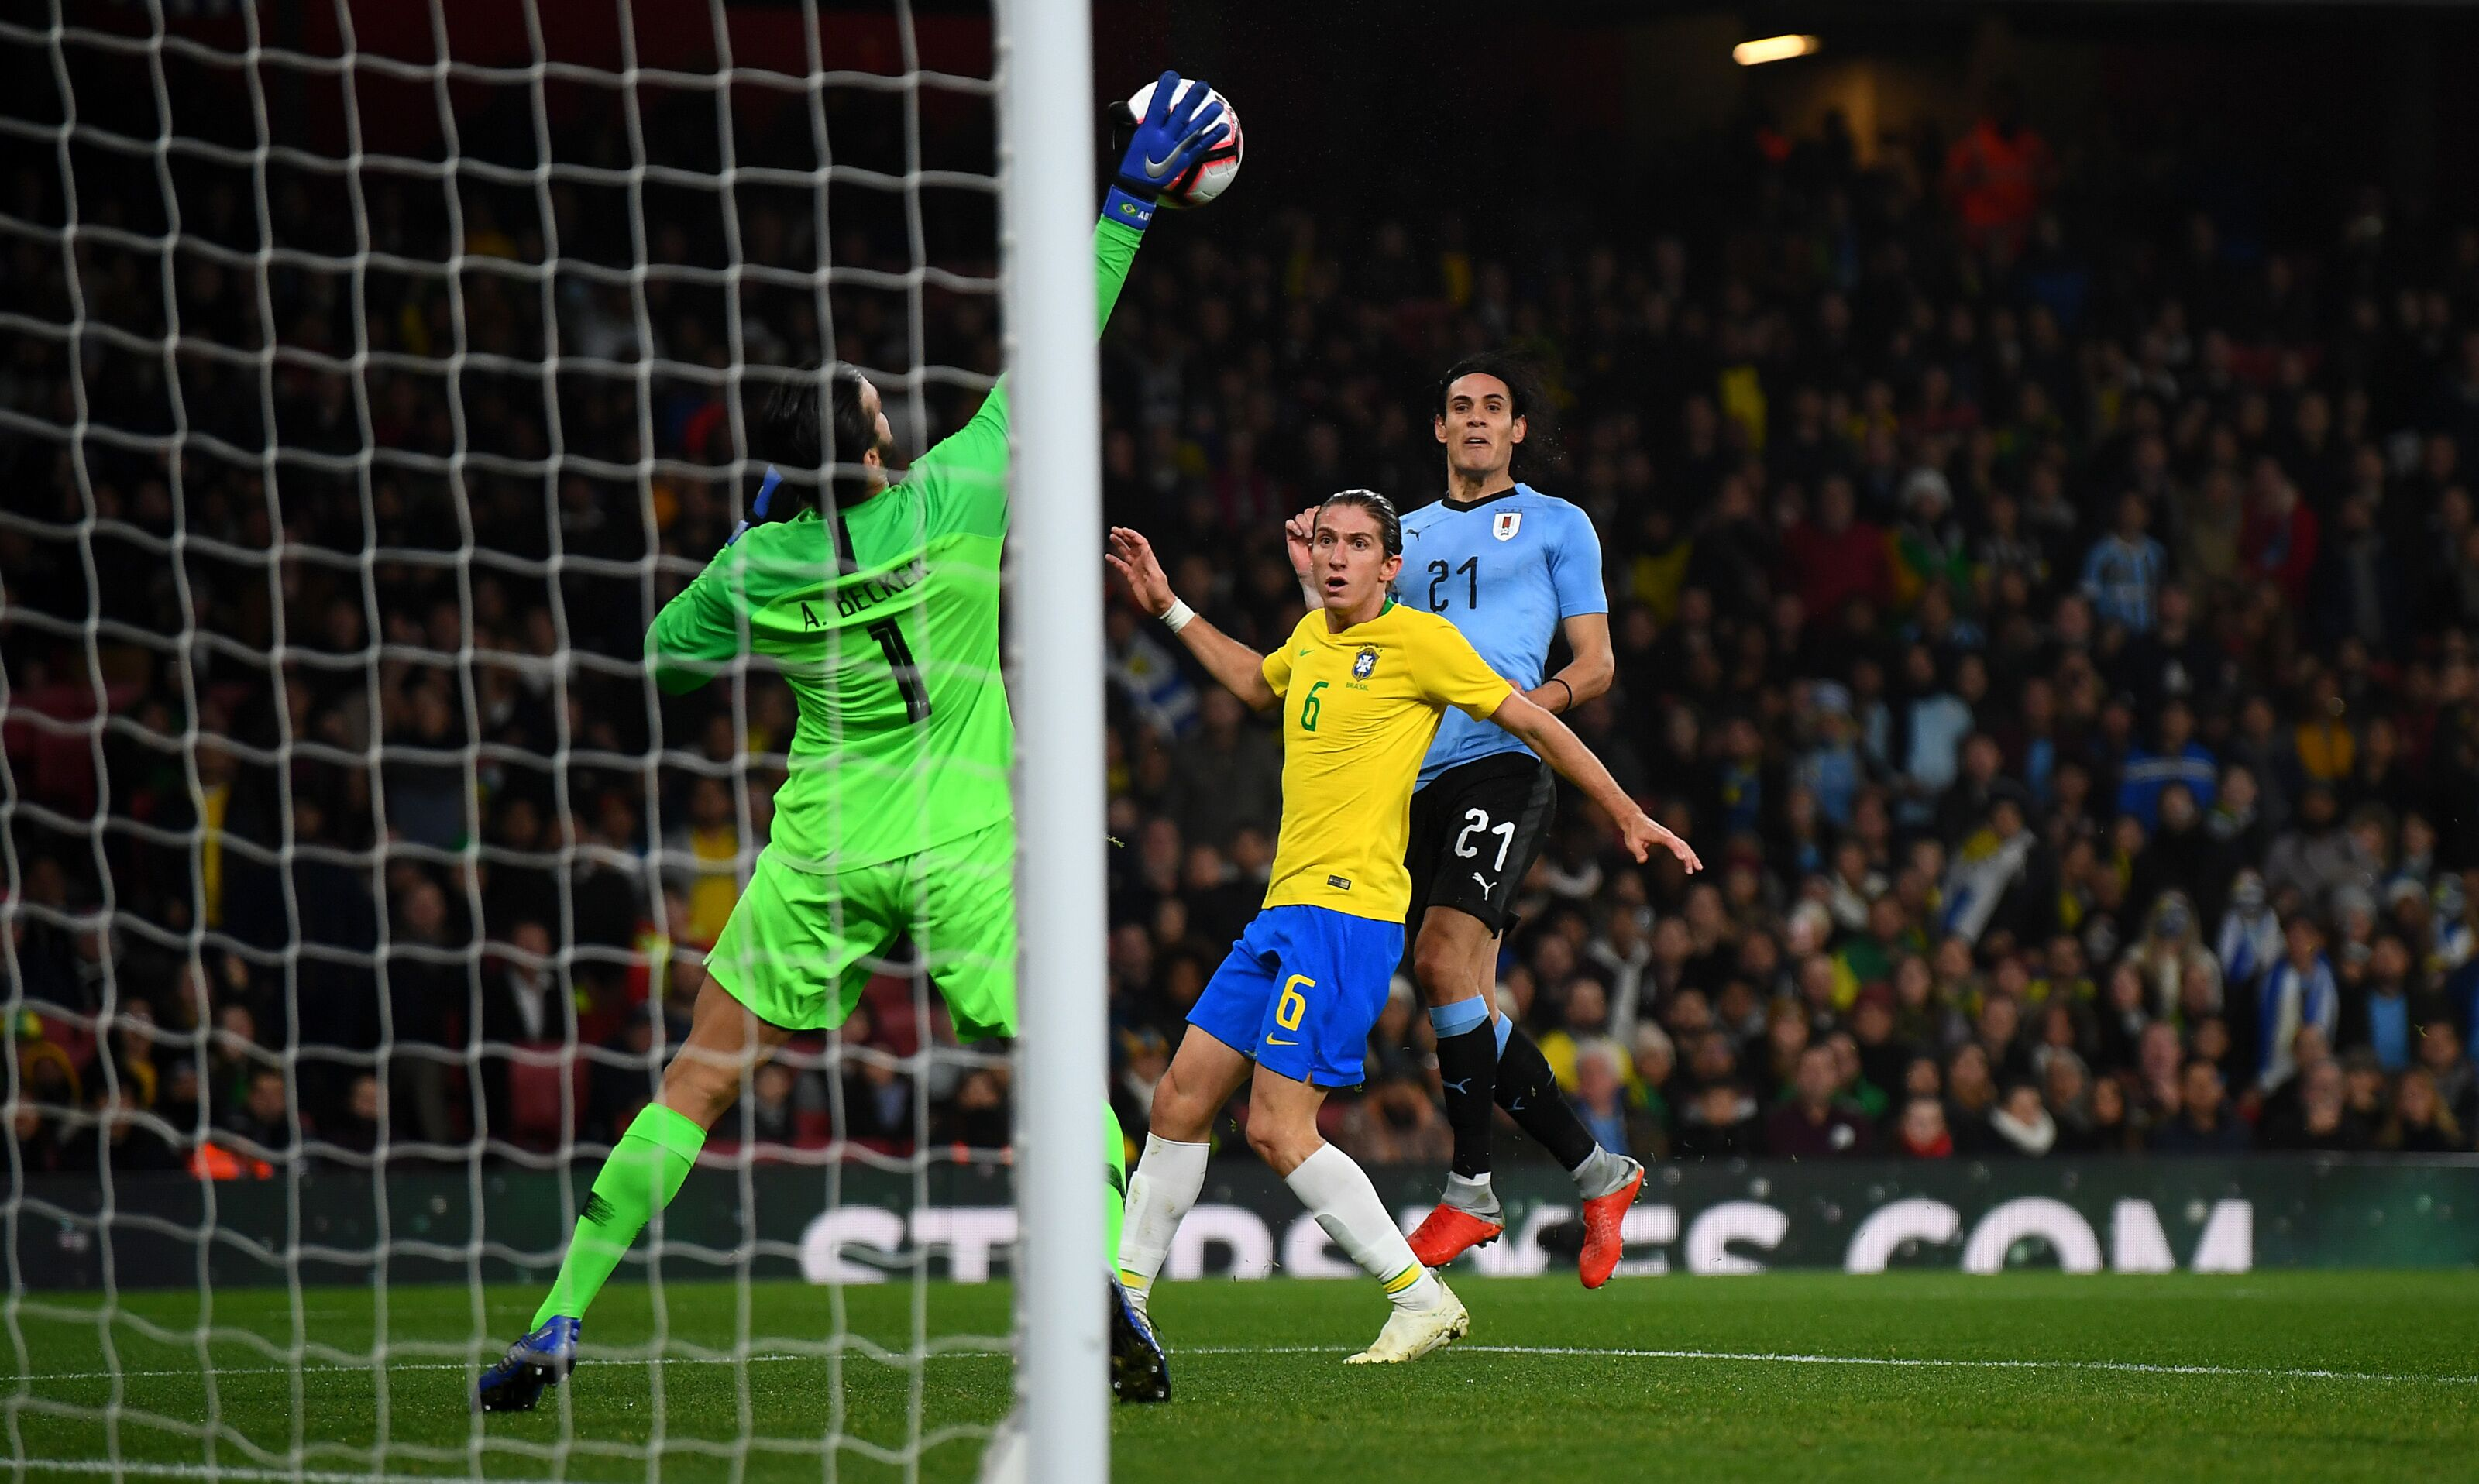 Liverpool: Alisson Becker Double Save For Brazil Has Fans Rapt